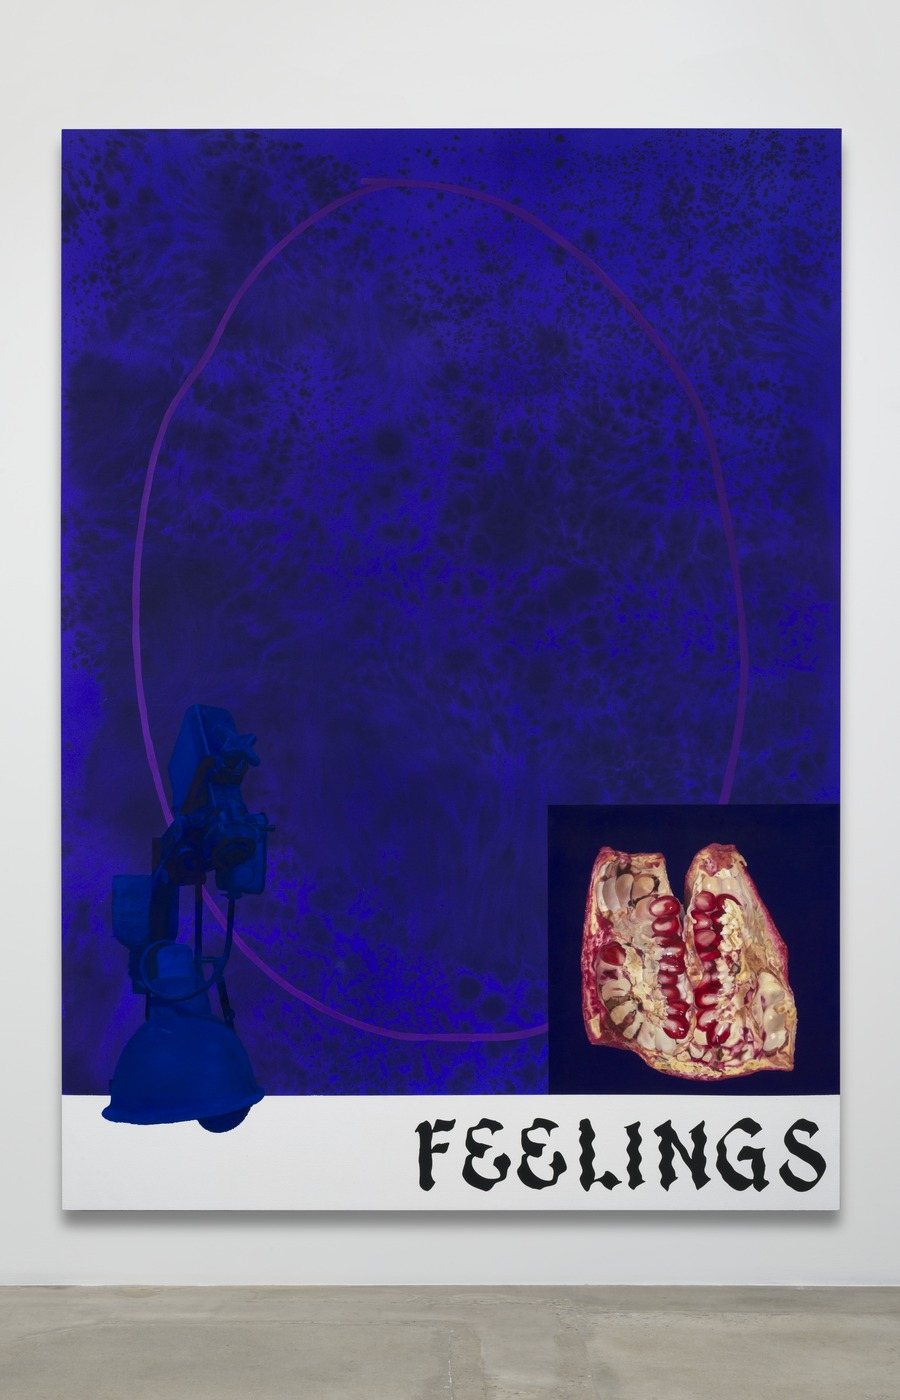 Gomez_Feelings Painting 5_2016_84x60